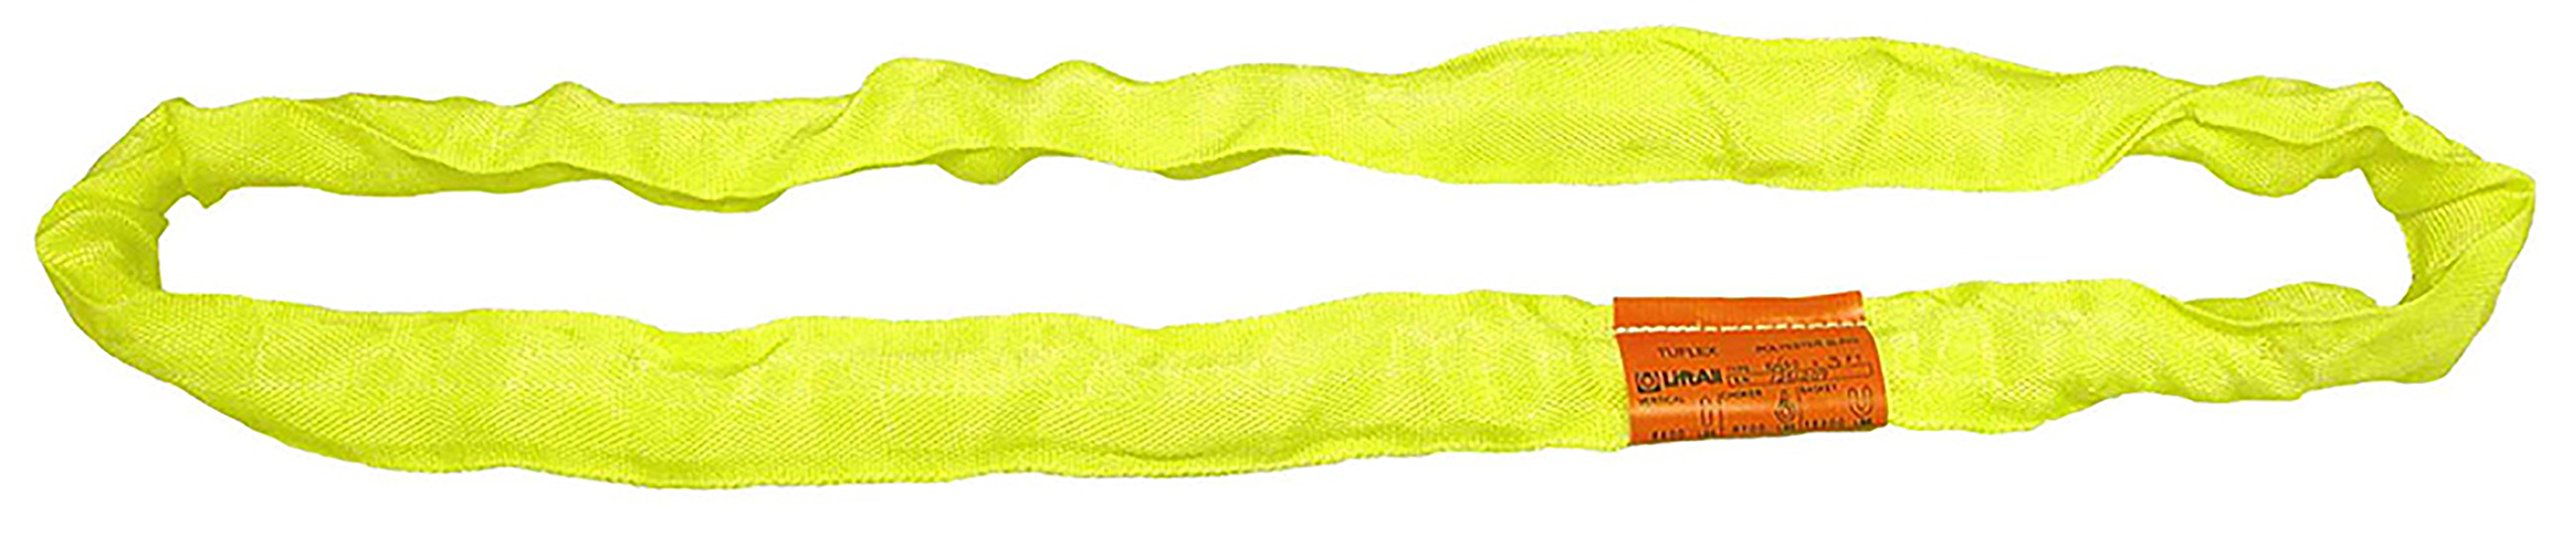 Liftall EN90X10 Tuflex Sling, Endless, 10', Yellow